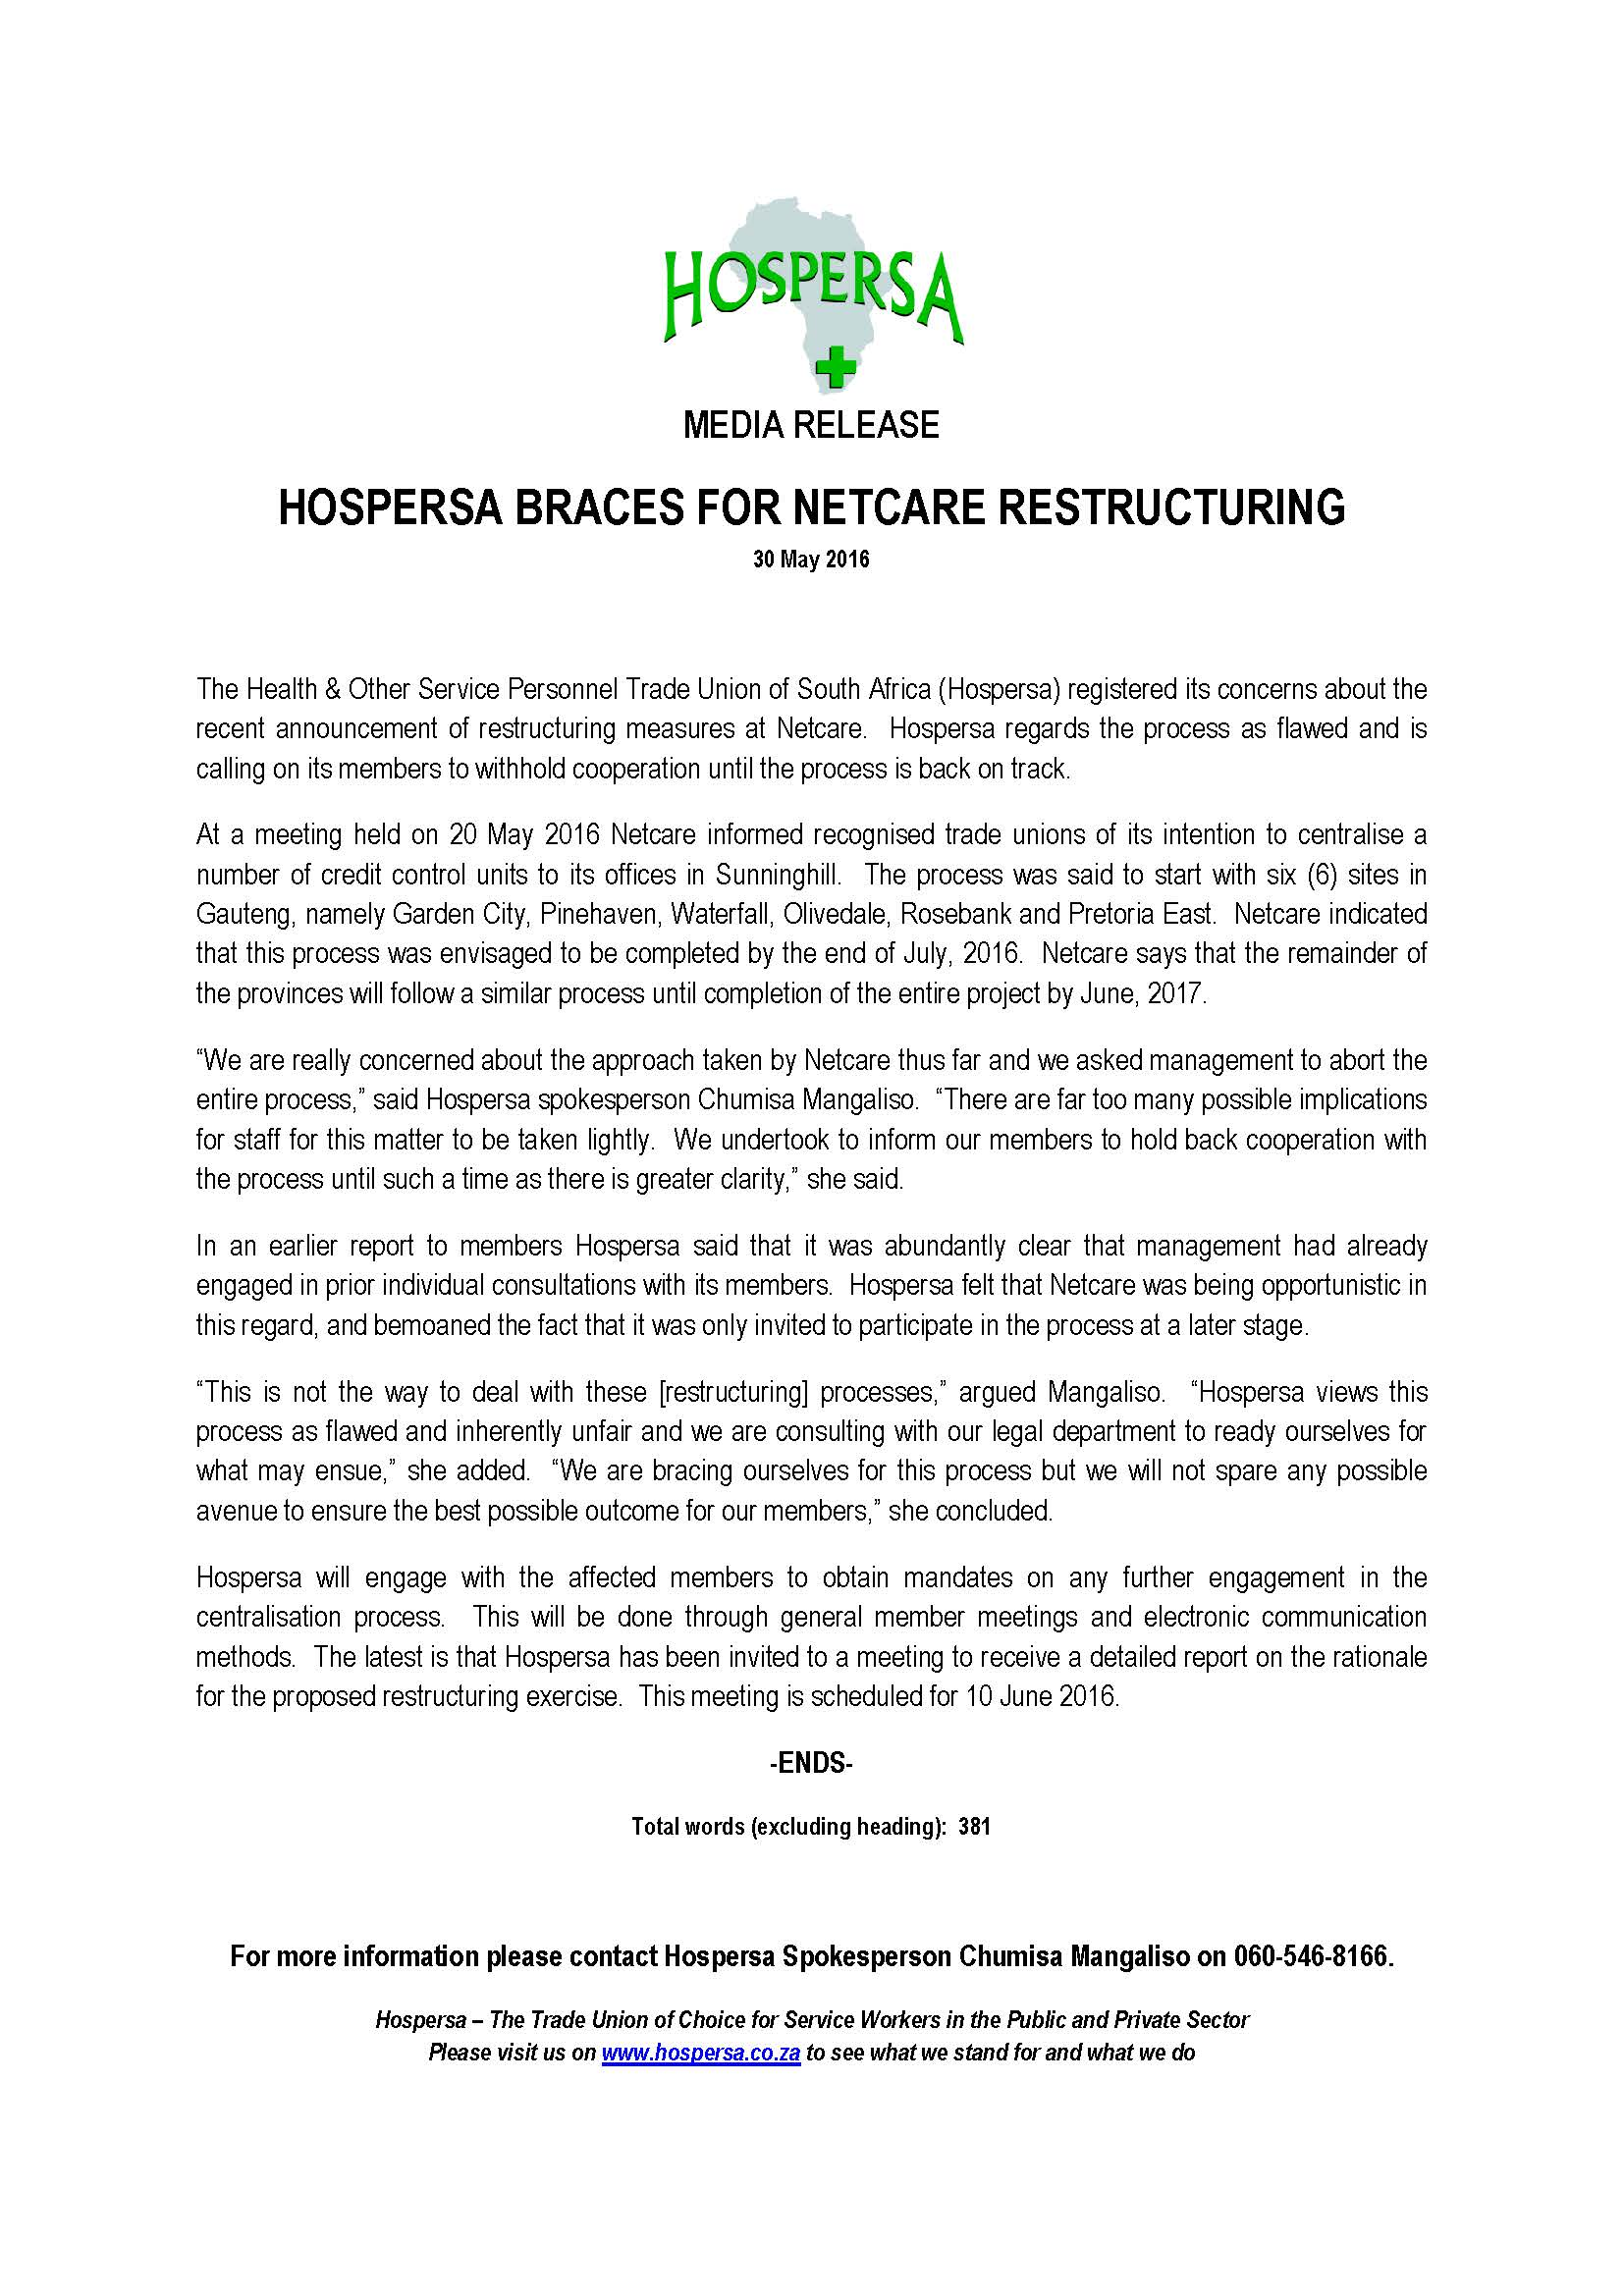 HOSPERSA BRACES FOR NETCARE RESTRUCTURING 160530